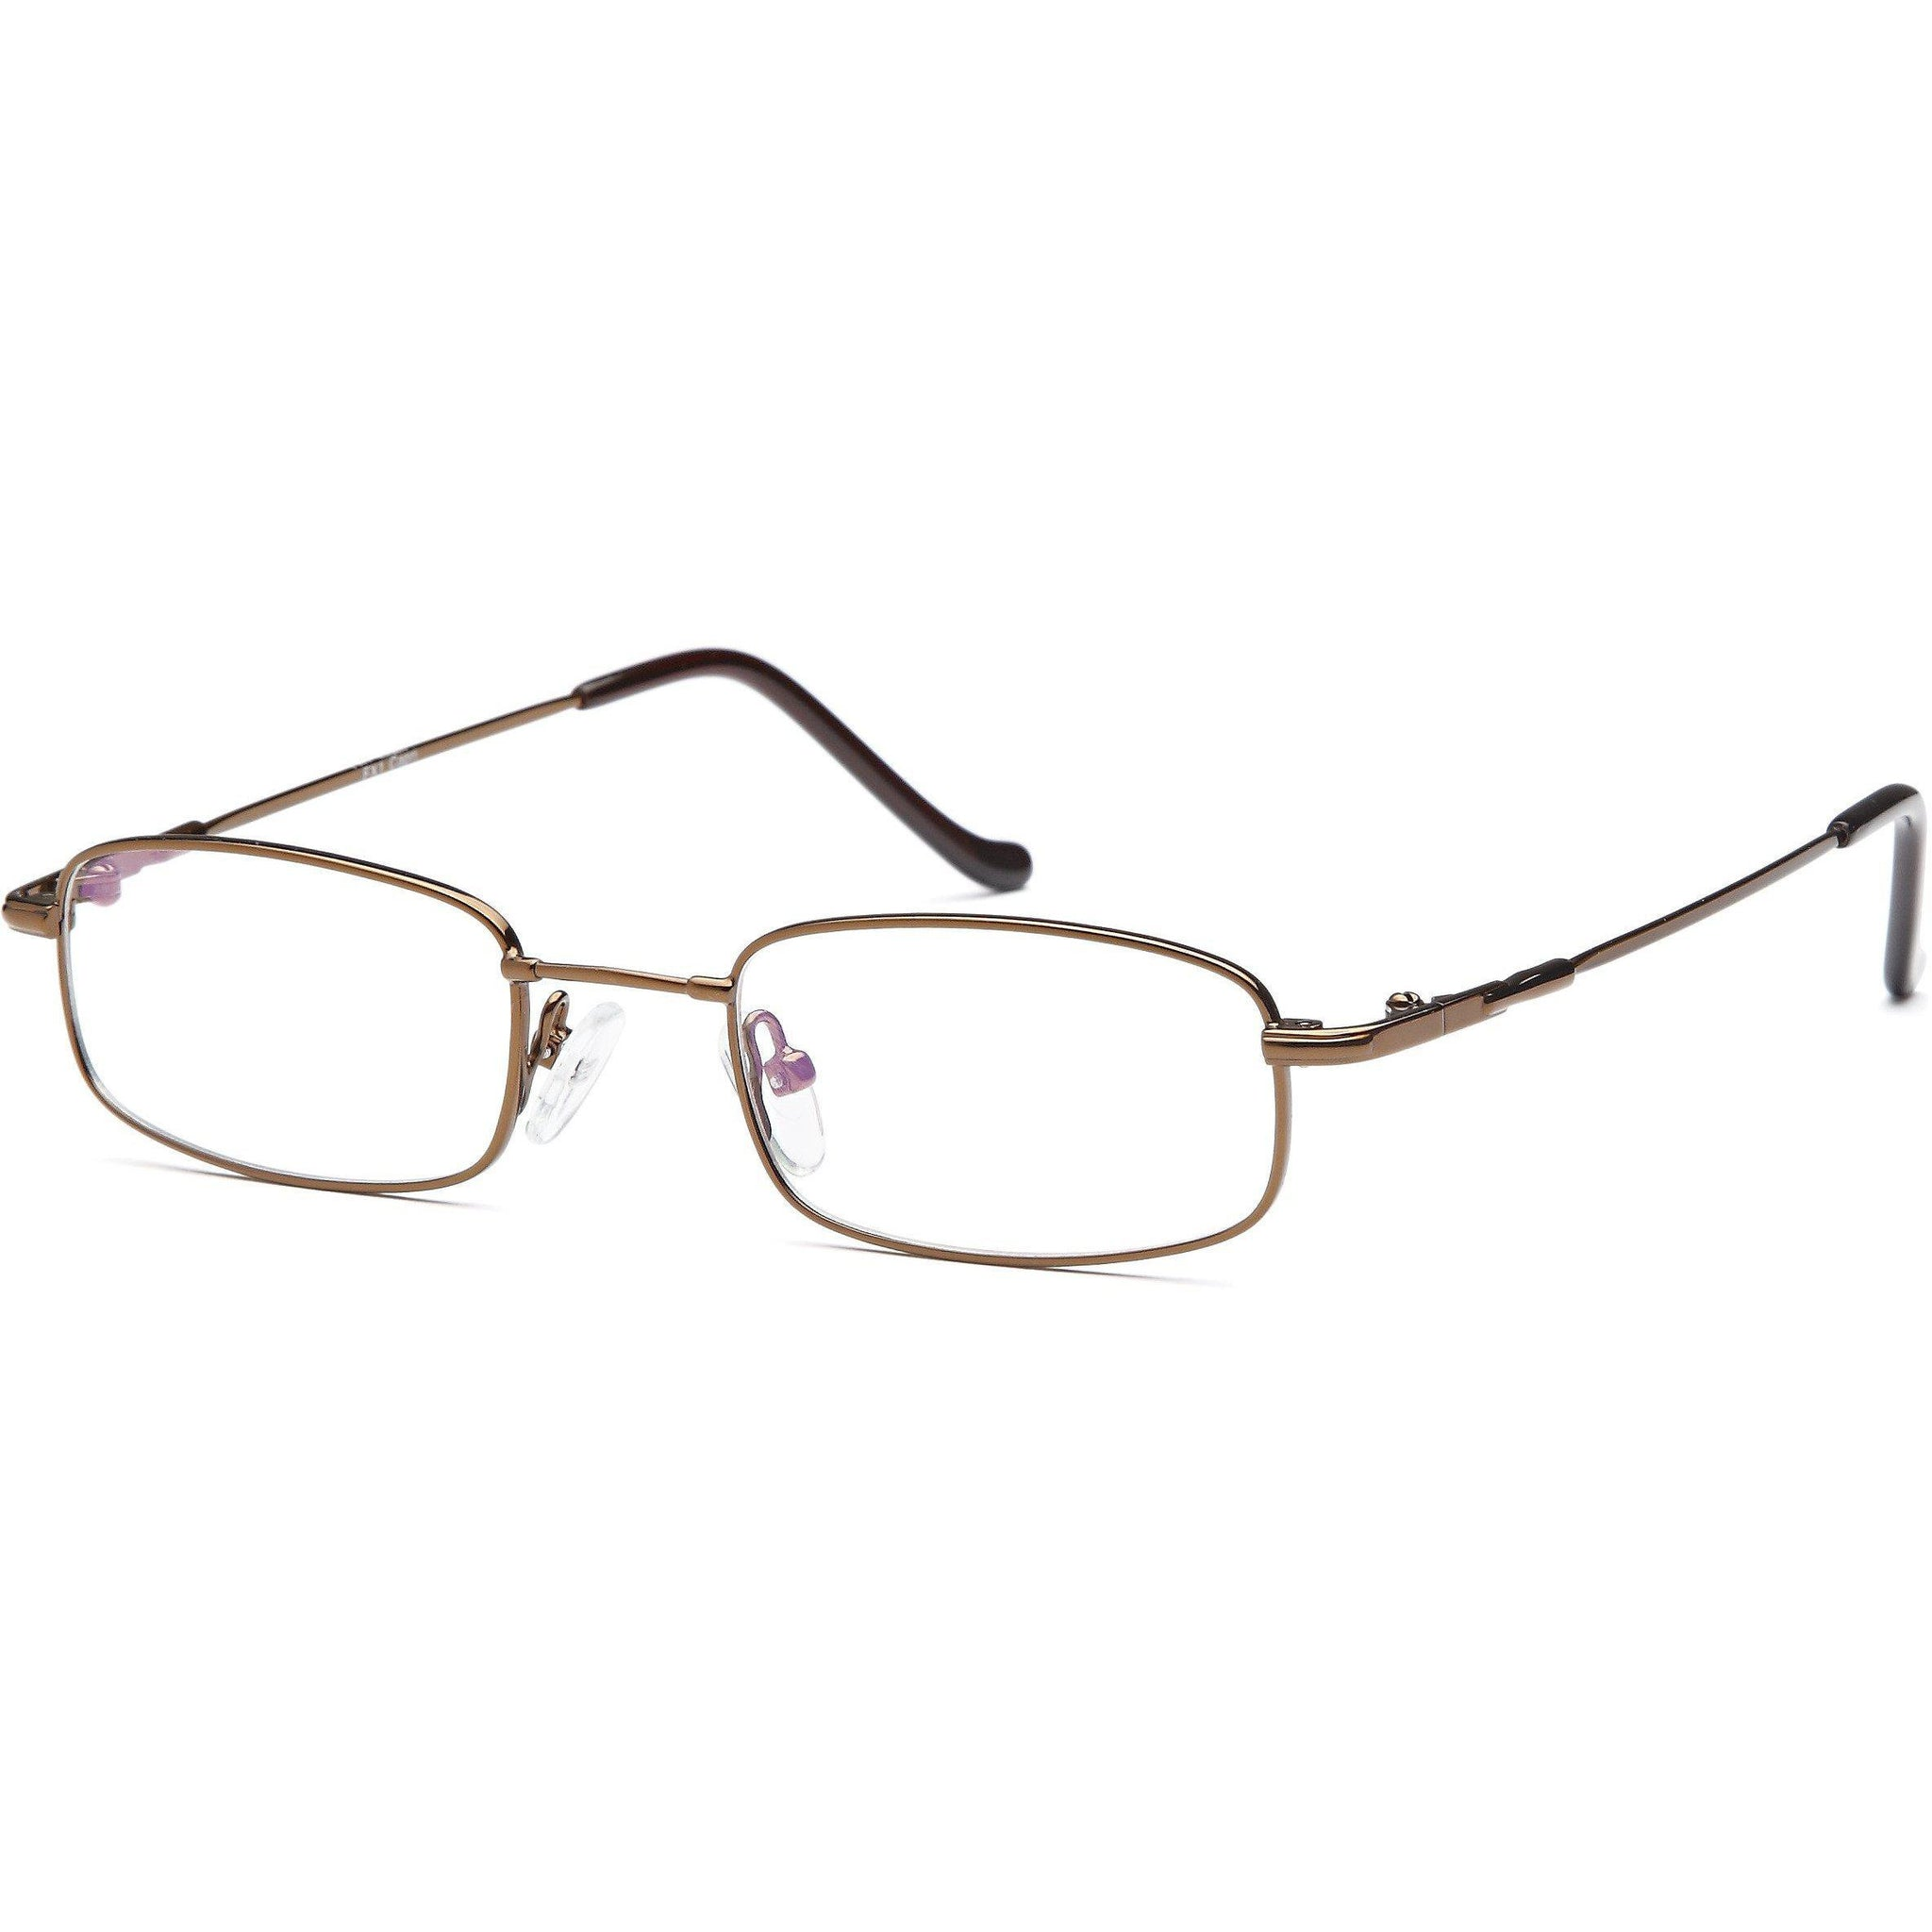 Titanium Prescription Glasses FX 1 Eyeglasses Frame